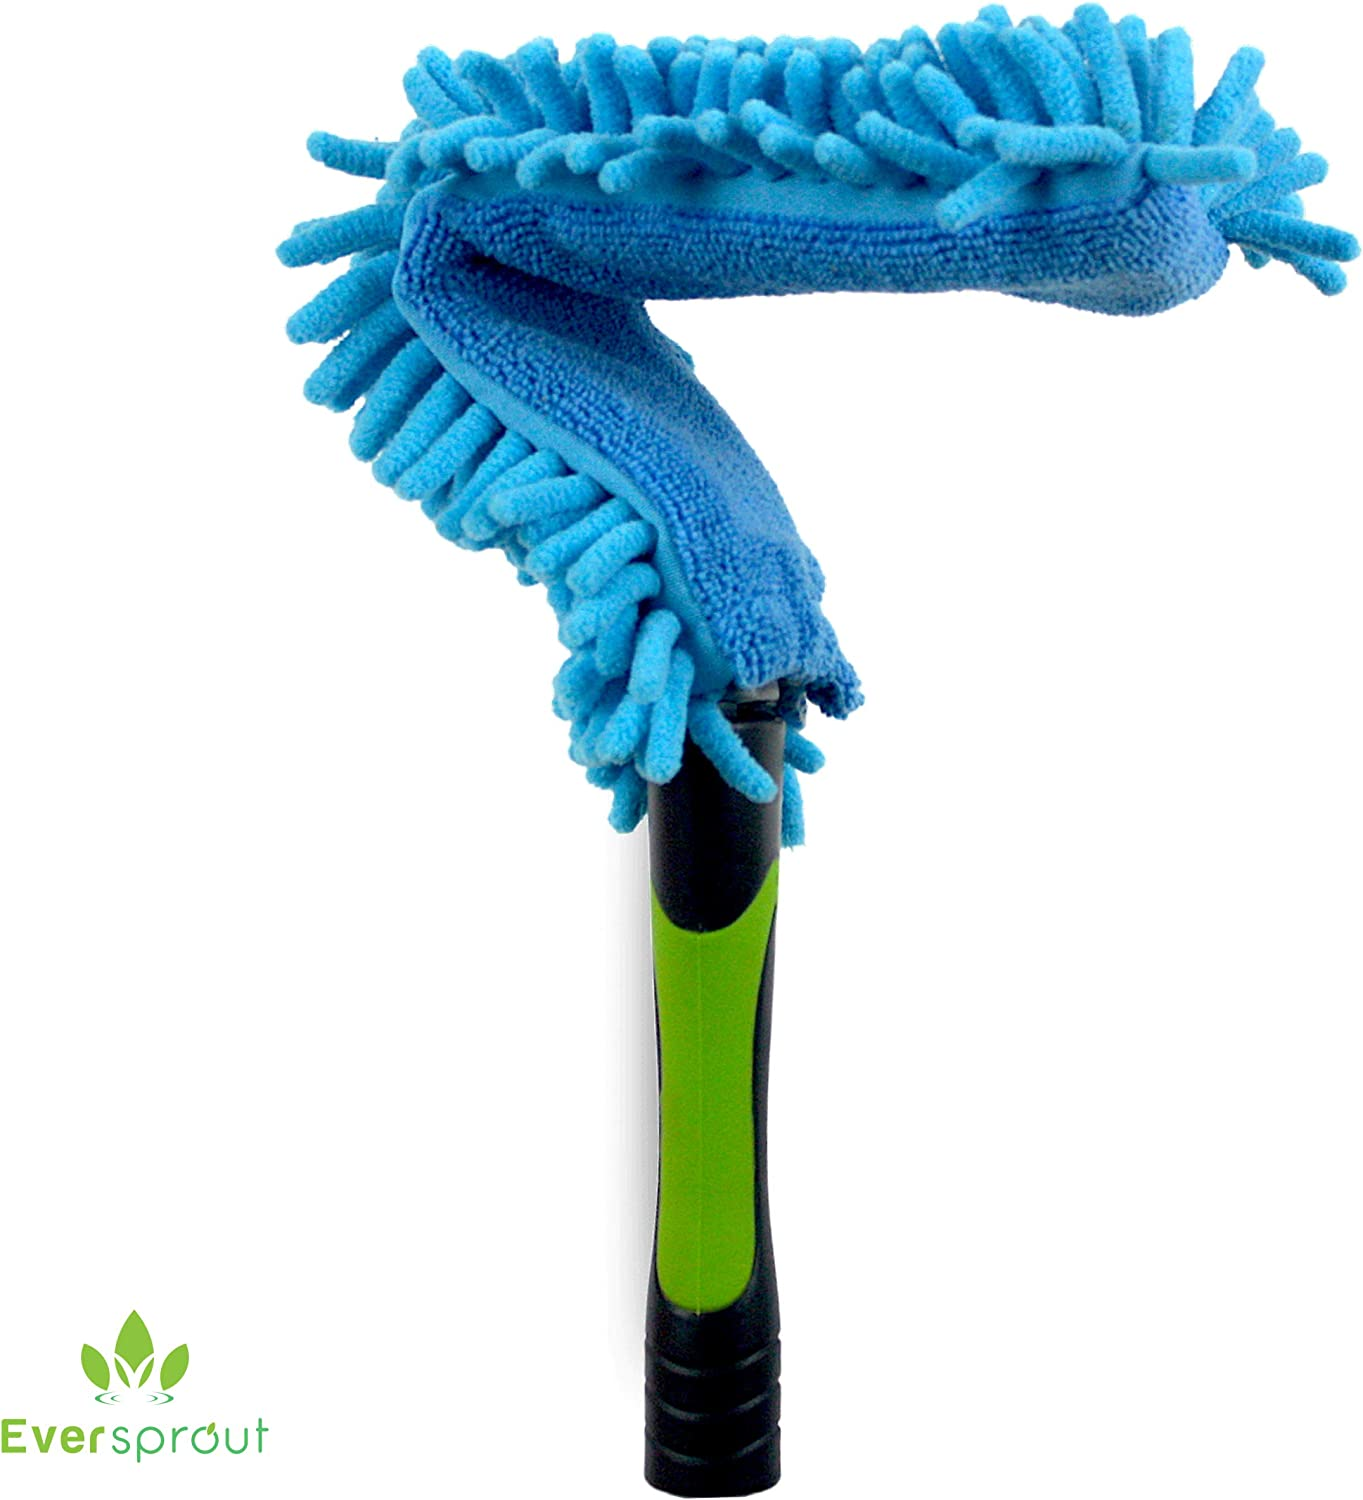 EVERSPROUT Flexible Microfiber Ceiling & Fan Duster | 17'' Duster Head | Removable & Washable Sleeve | Bends to Clean Any Fan Blade | Twists onto Standard US Threaded Poles (Pole Sold Separately)